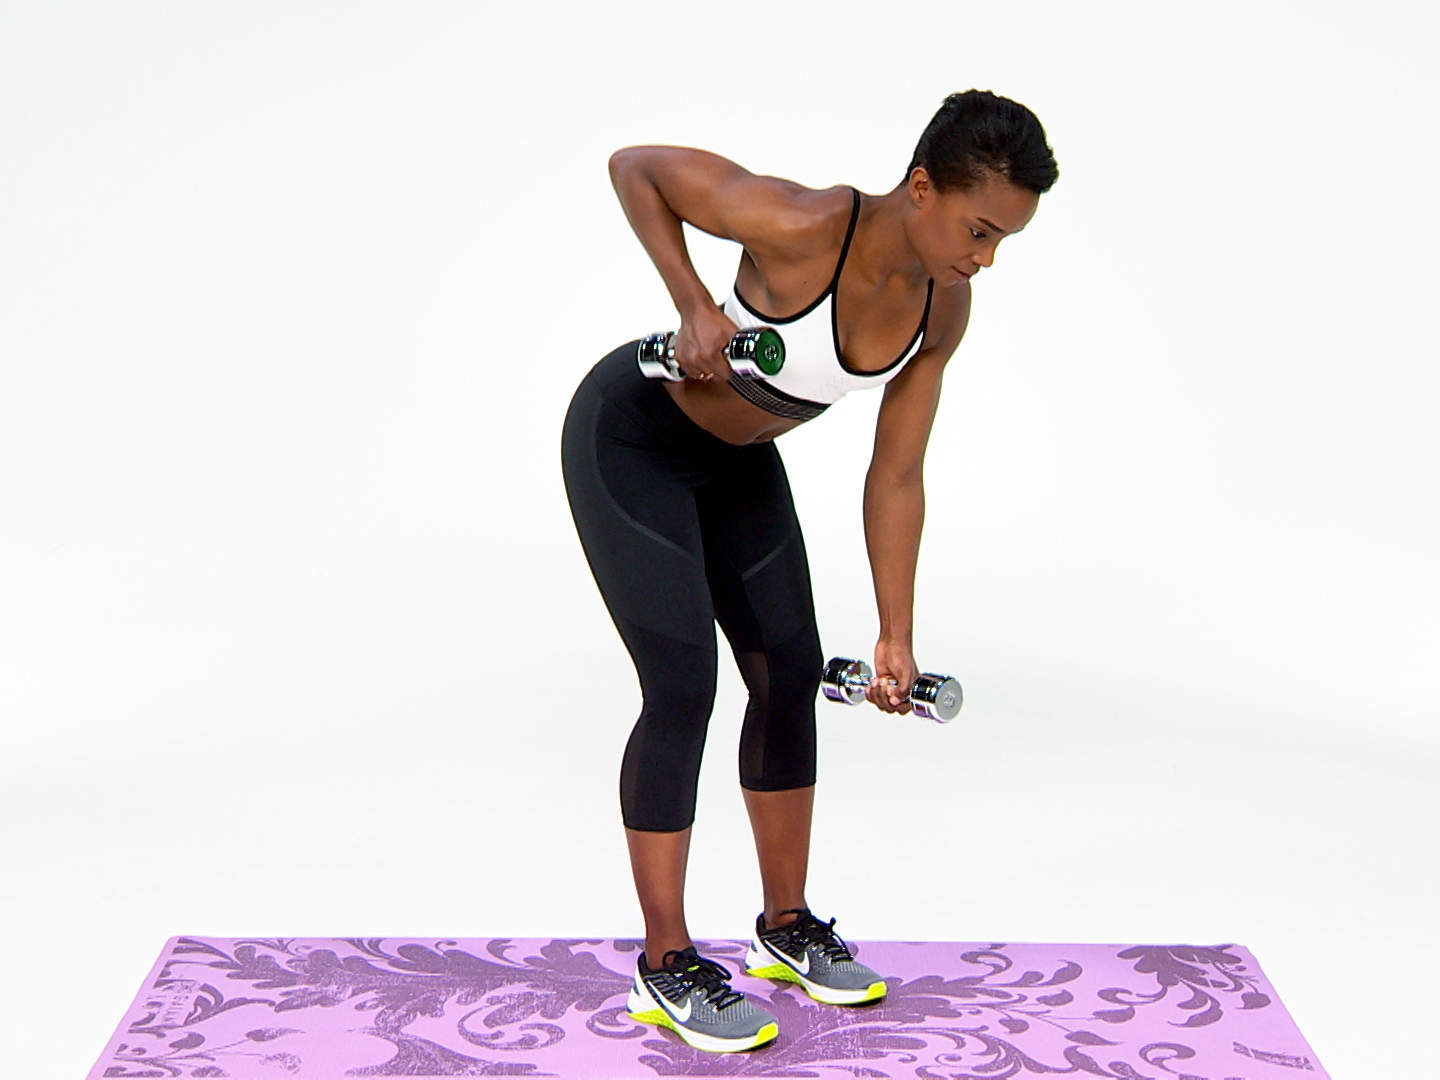 6-moves-to-tone-arms-shoulders-back-video